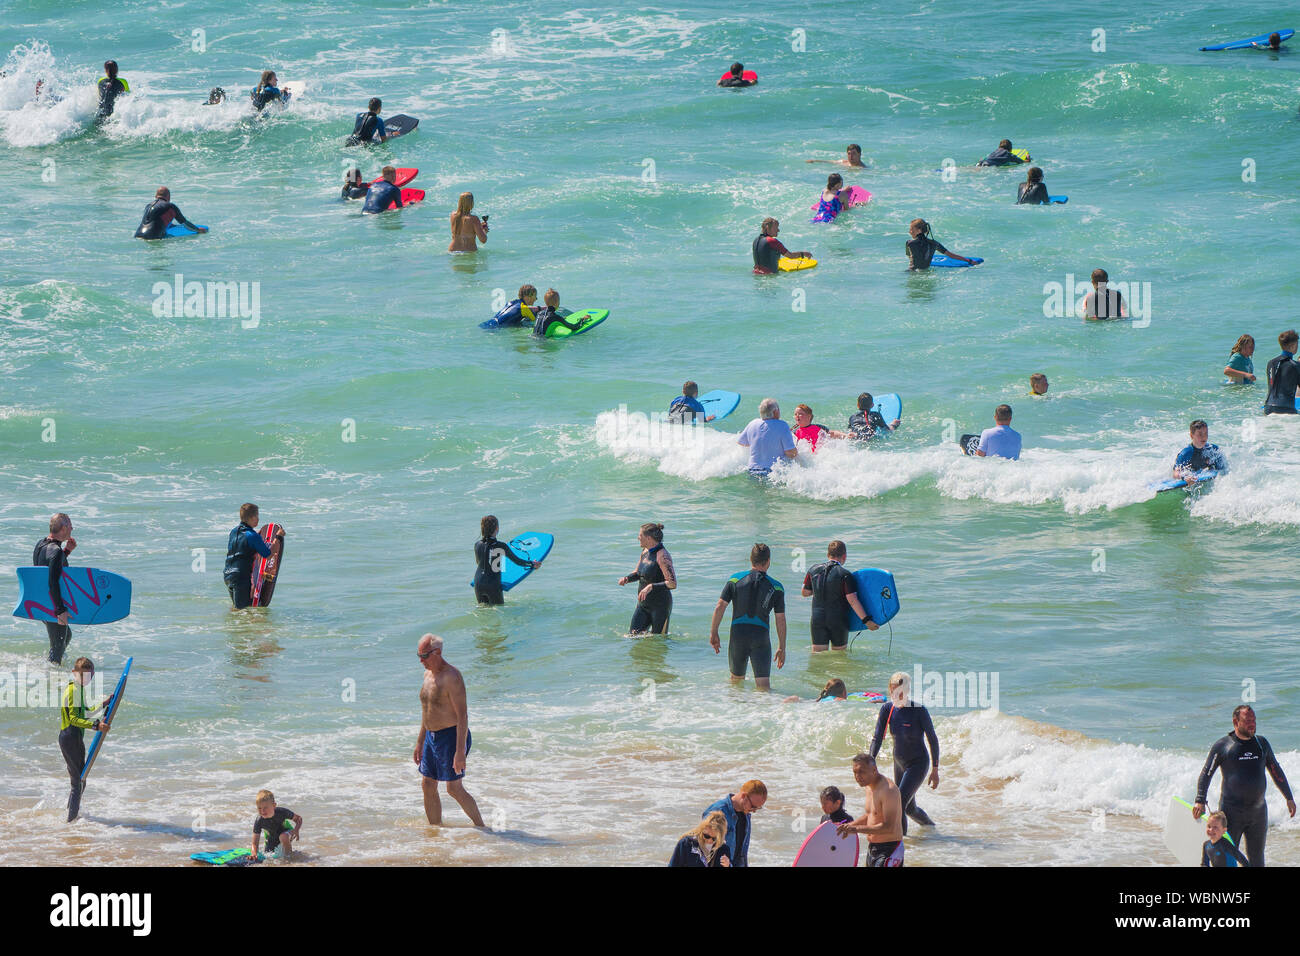 Holidaymakers on a staycation holiday enjoying themselves in the sea at Fistral in Newquay in Cornwall. Stock Photo